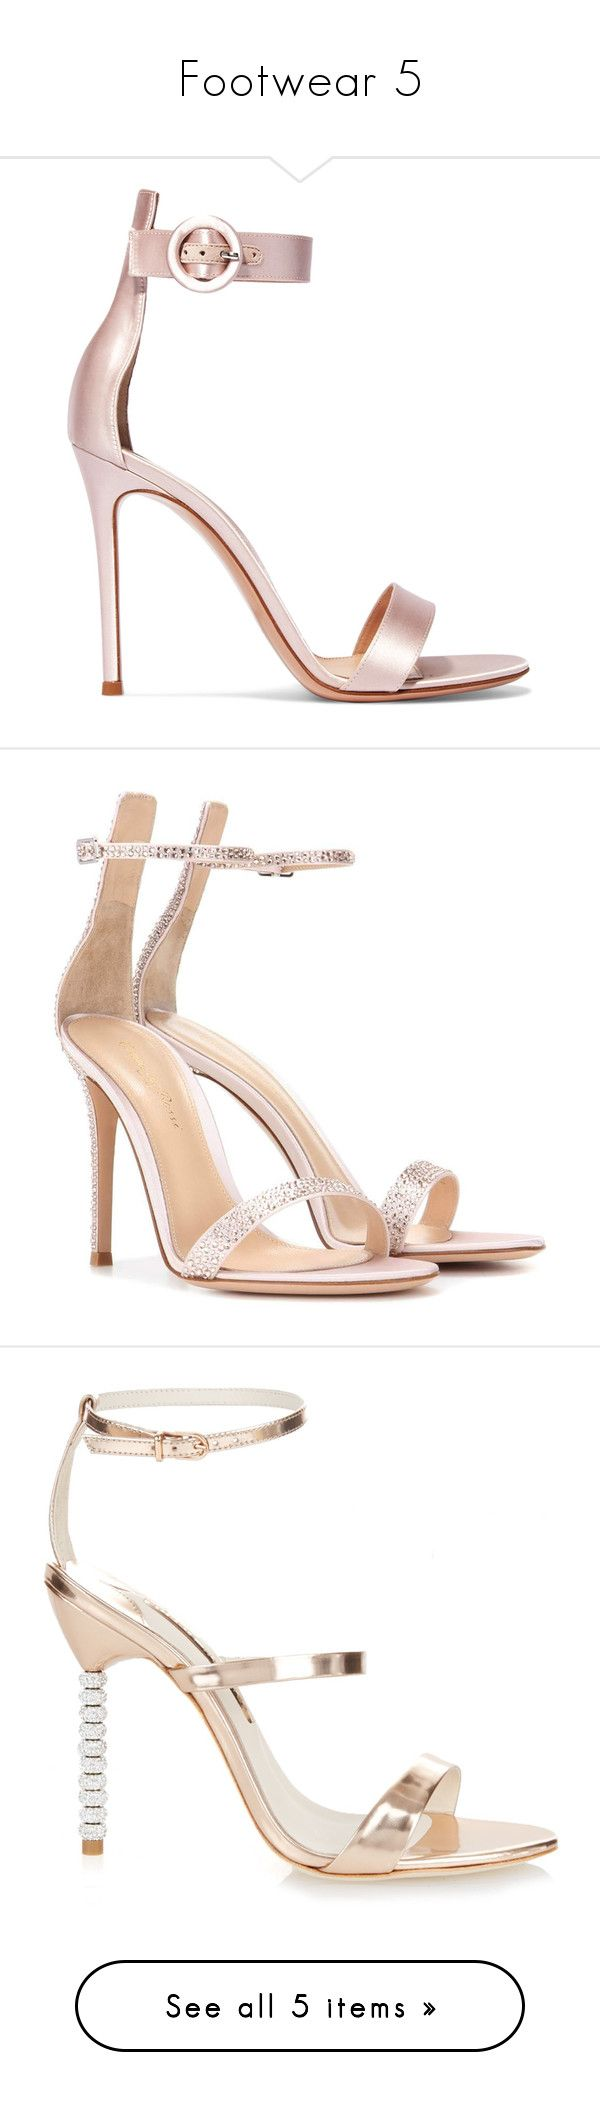 """""""Footwear 5"""" by lalalace-1 ❤ liked on Polyvore featuring shoes, sandals, heels, strappy high heel sandals, pink bridal shoes, bridal sandals, pink high heel sandals, buckle sandals, pink and satin sandals"""